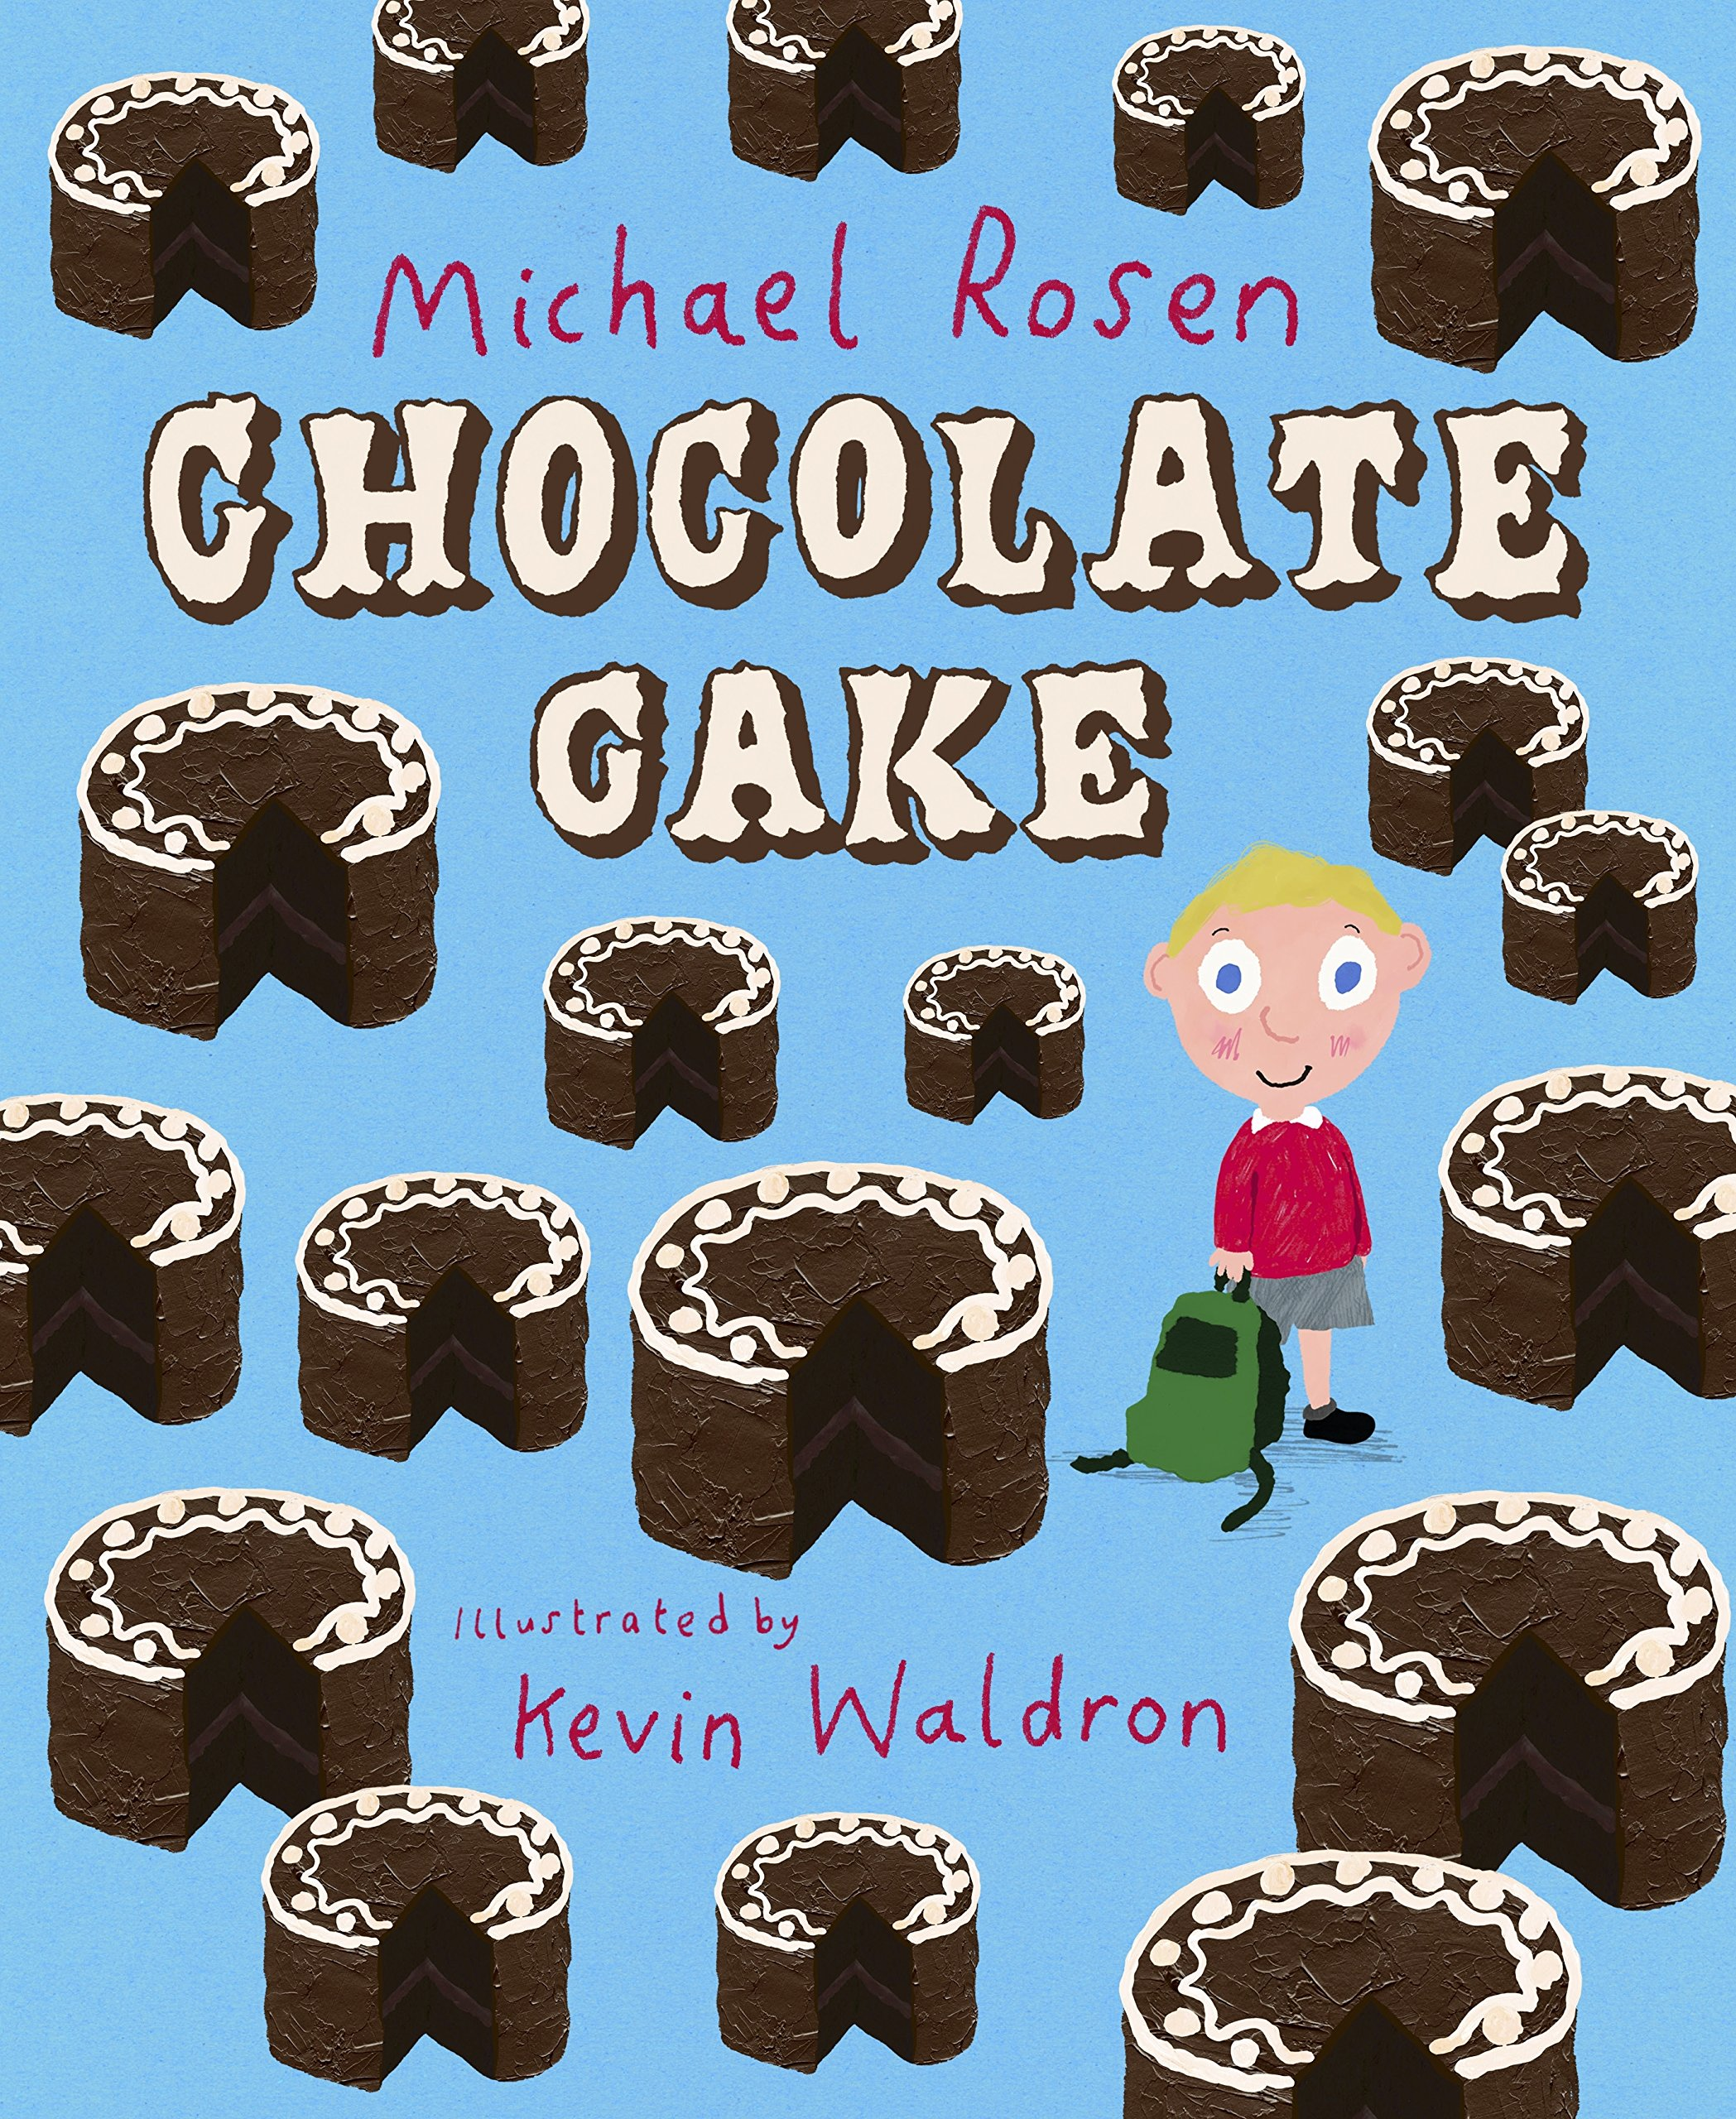 Image result for chocolate cake michael rosen